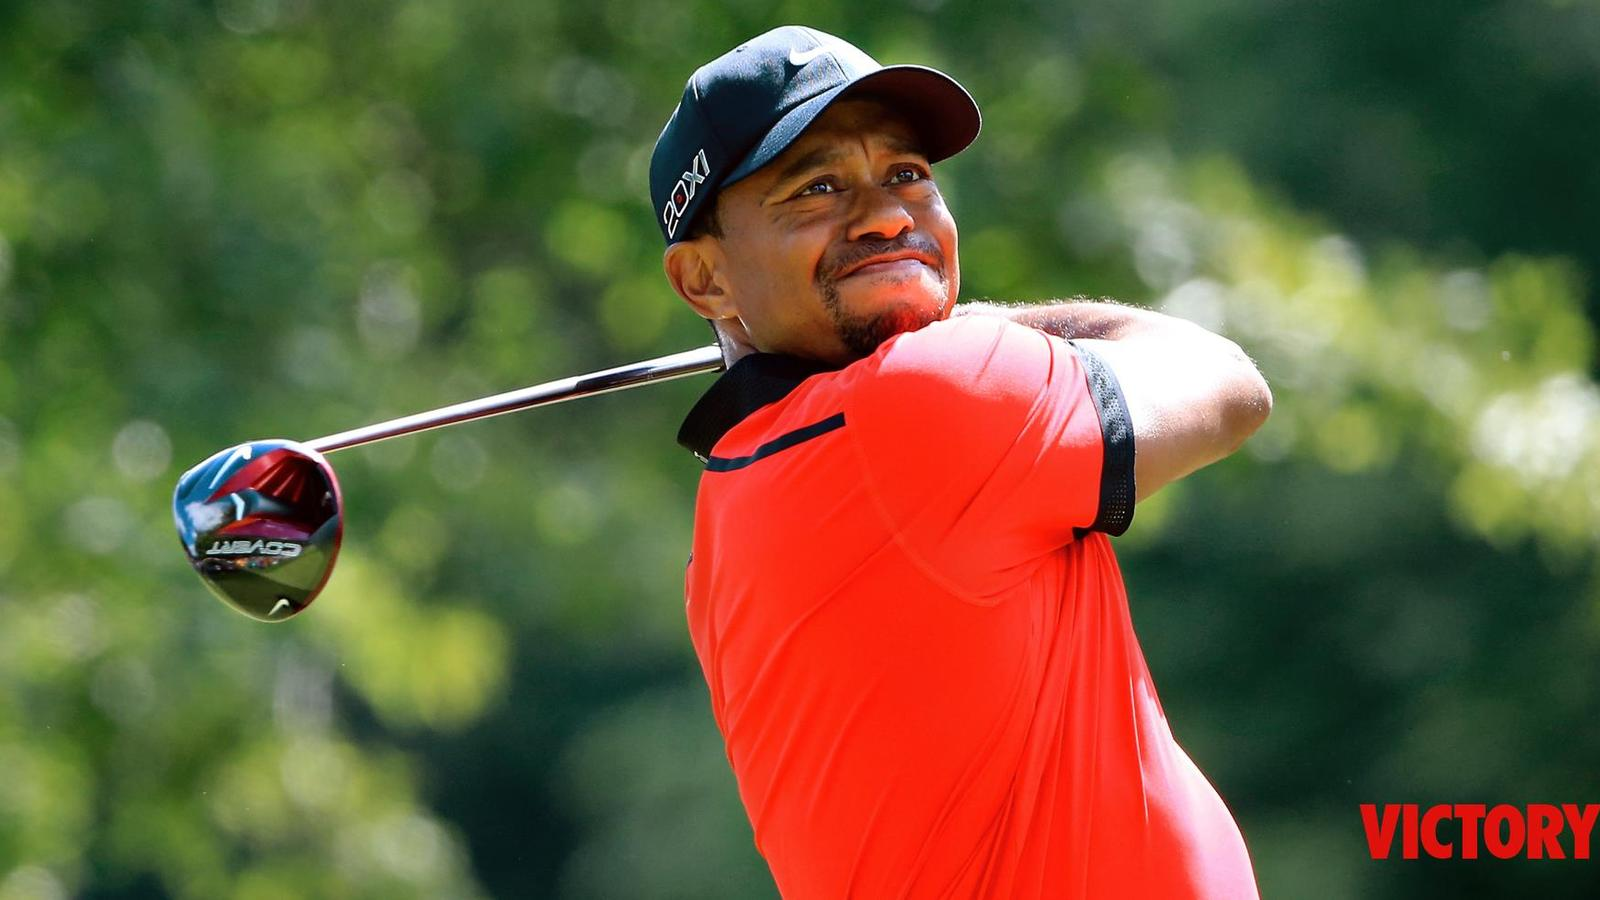 Tiger Woods Captures 79th PGA Tour Victory